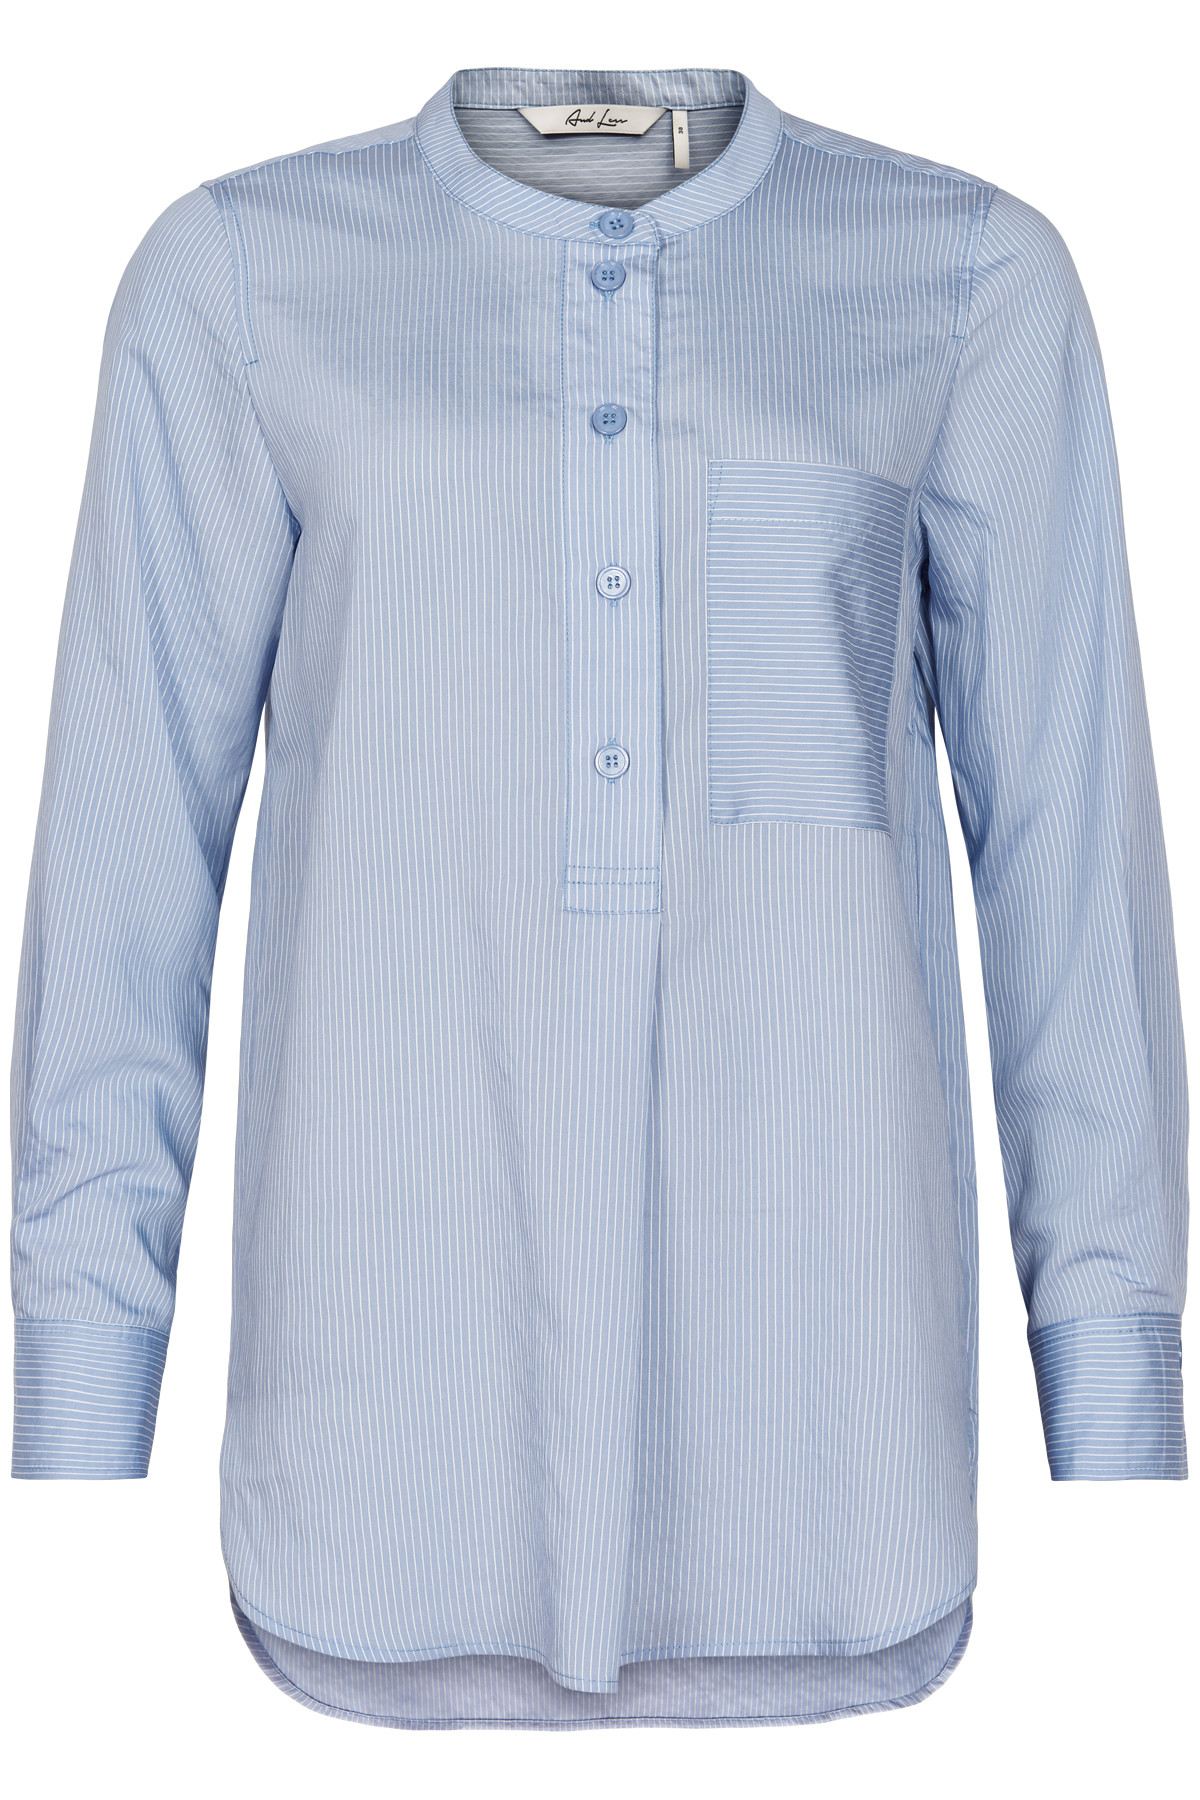 Image of AND LESS ALACE BLUSE 5120002 (Colony Blue, 36)